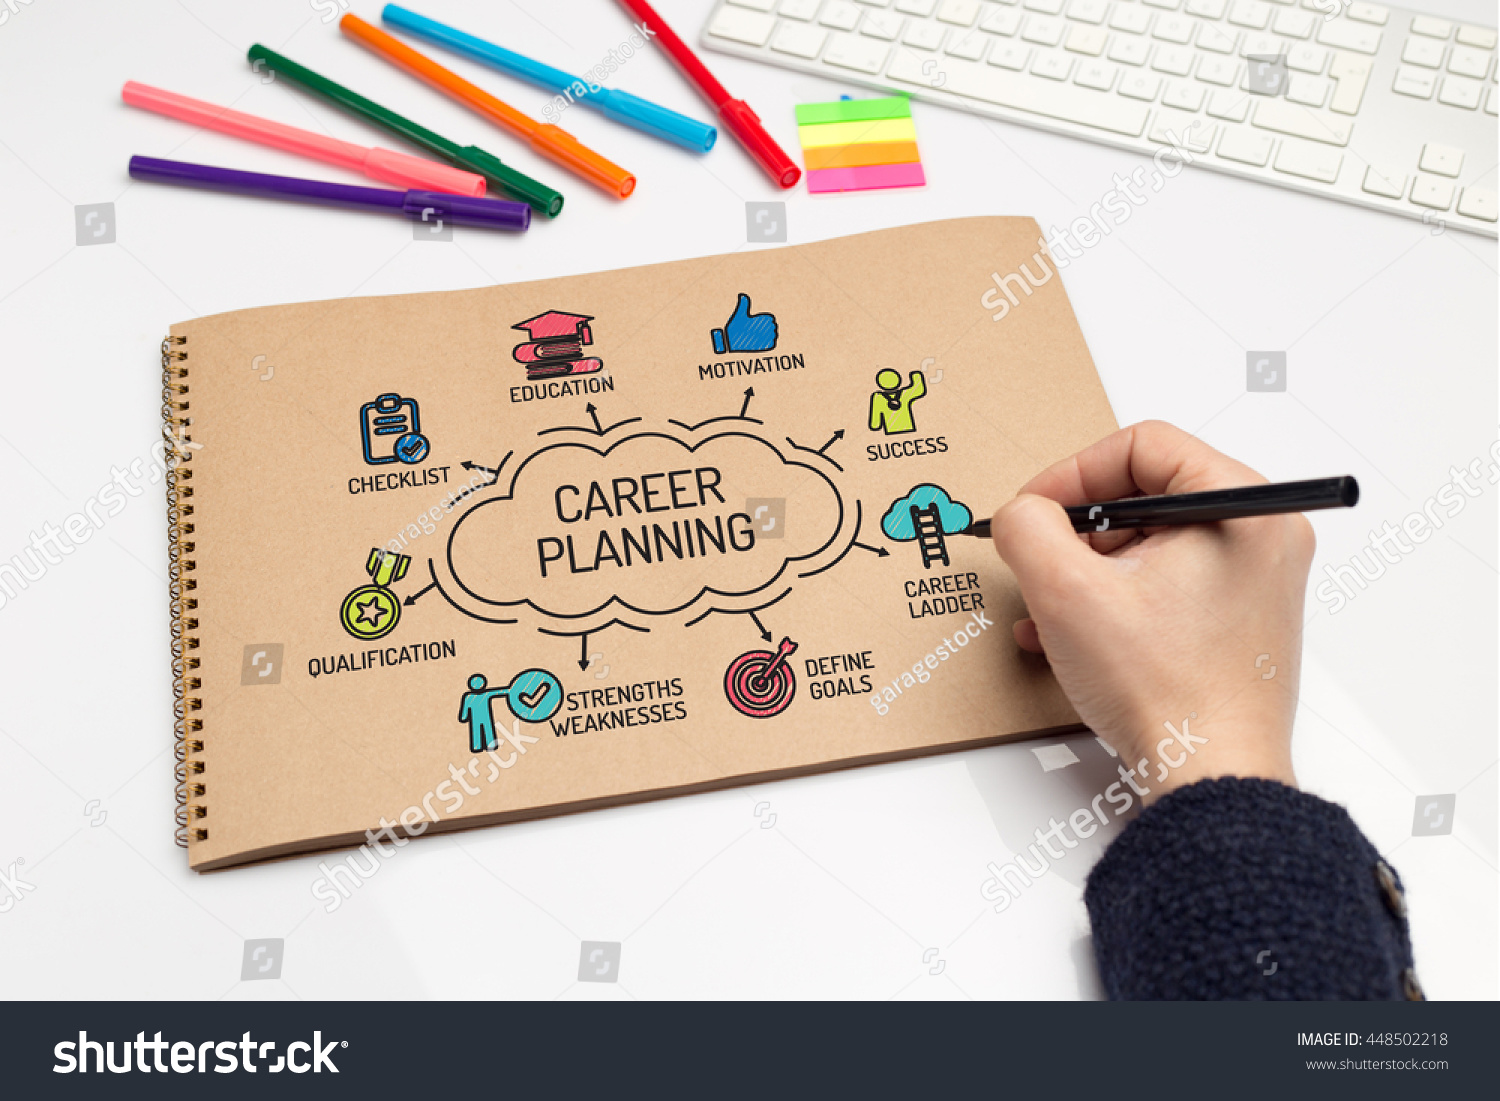 career planning chart keywords sketch icons stock illustration career planning chart keywords and sketch icons